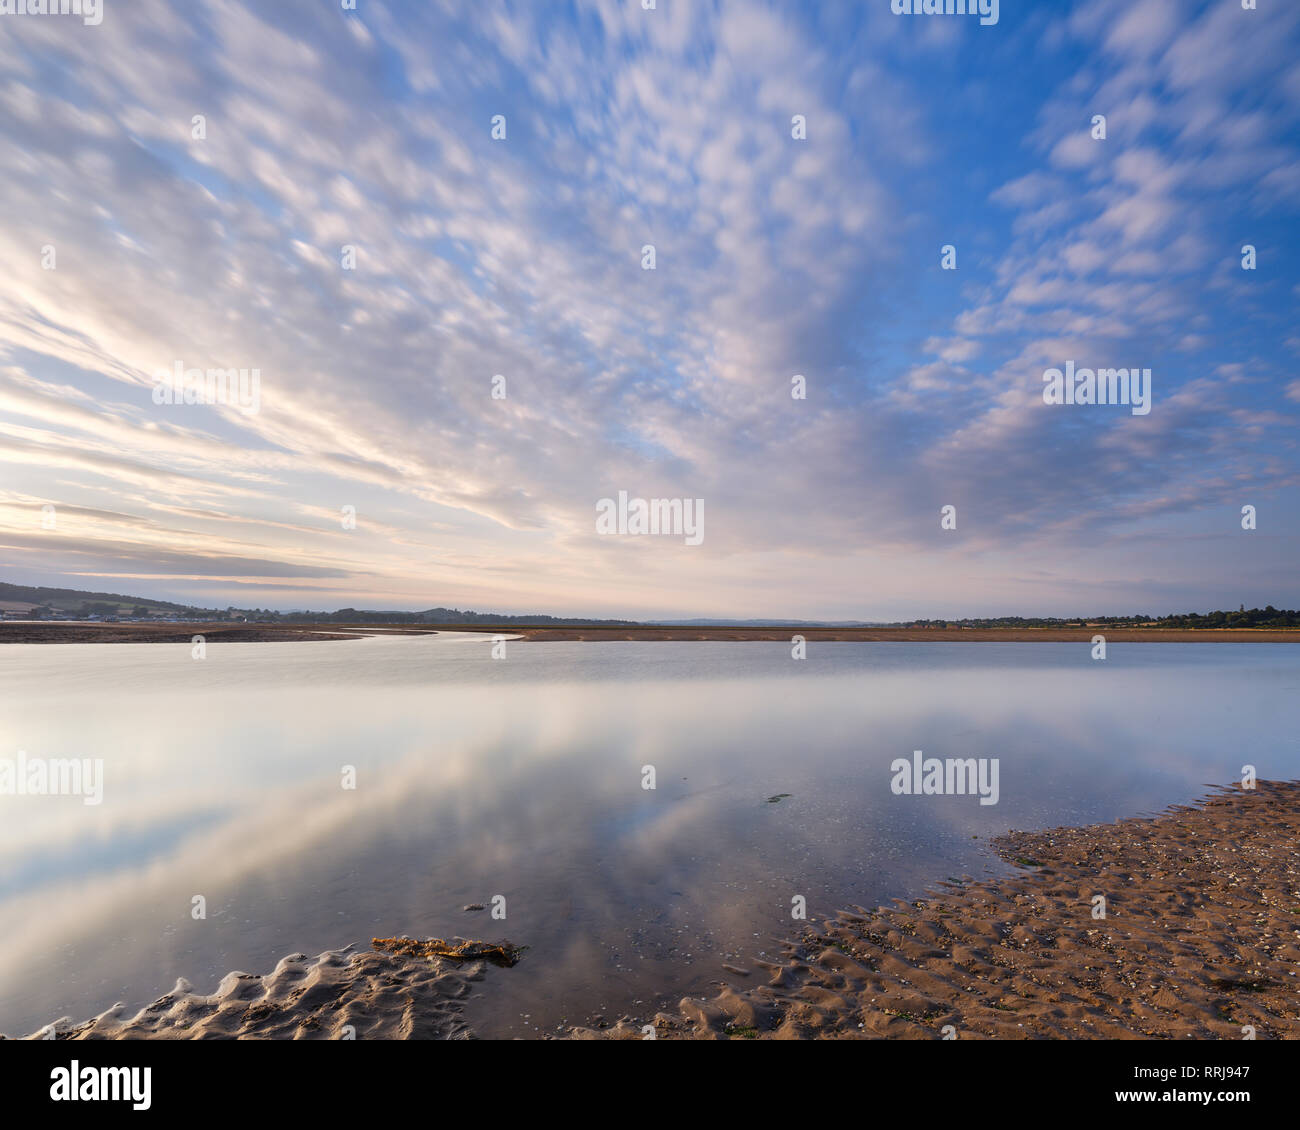 Looking North up the Exe estuary with interesting clouds and reflections from Exmouth, Devon, England, United Kingdom, Europe - Stock Image